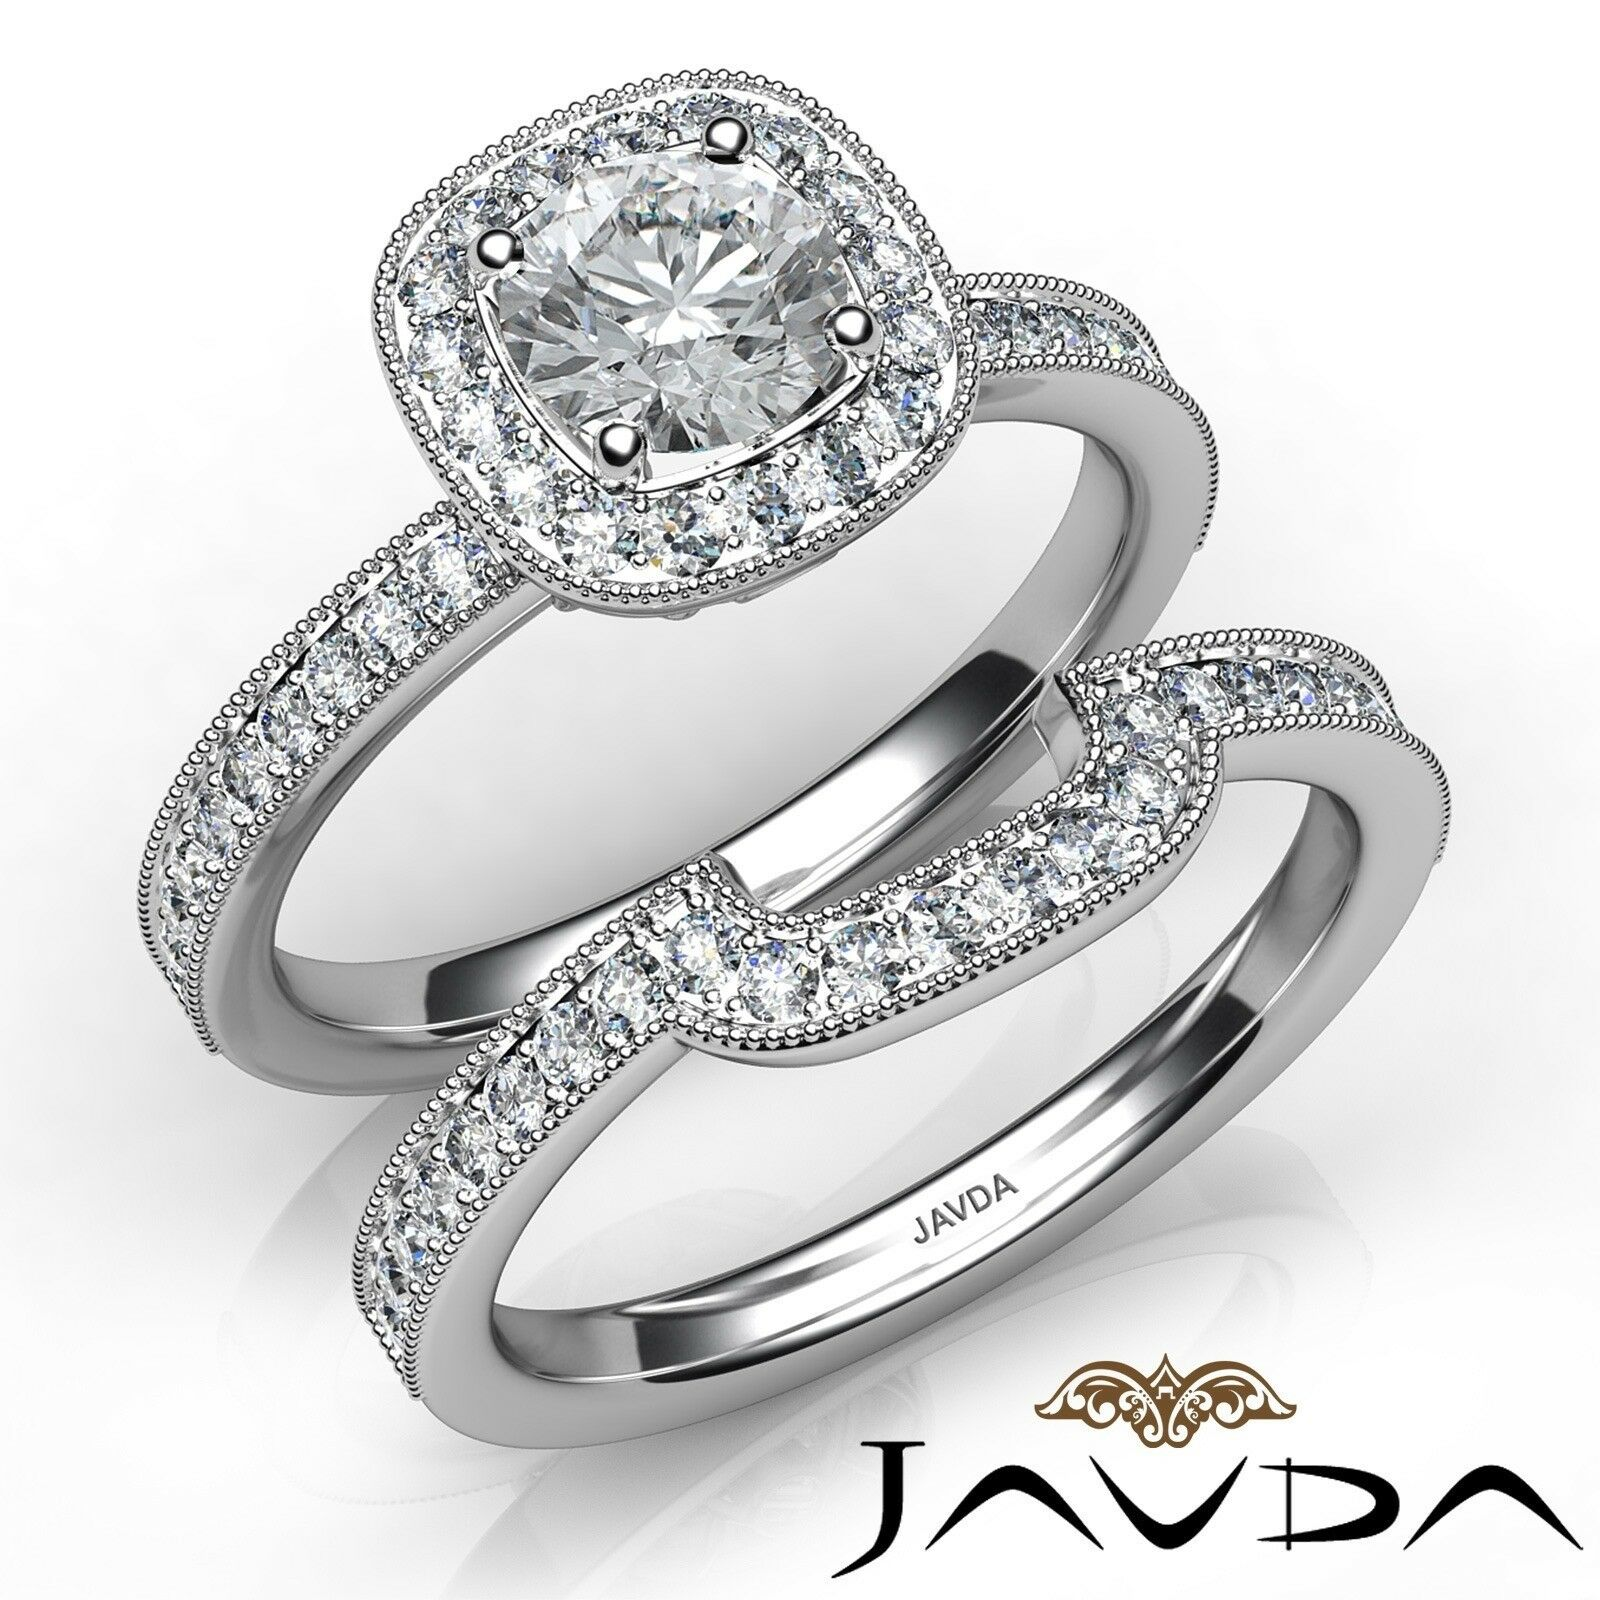 1.6ctw Milgrain Halo Bridal Round Diamond Engagement Ring GIA E-VVS2 White Gold